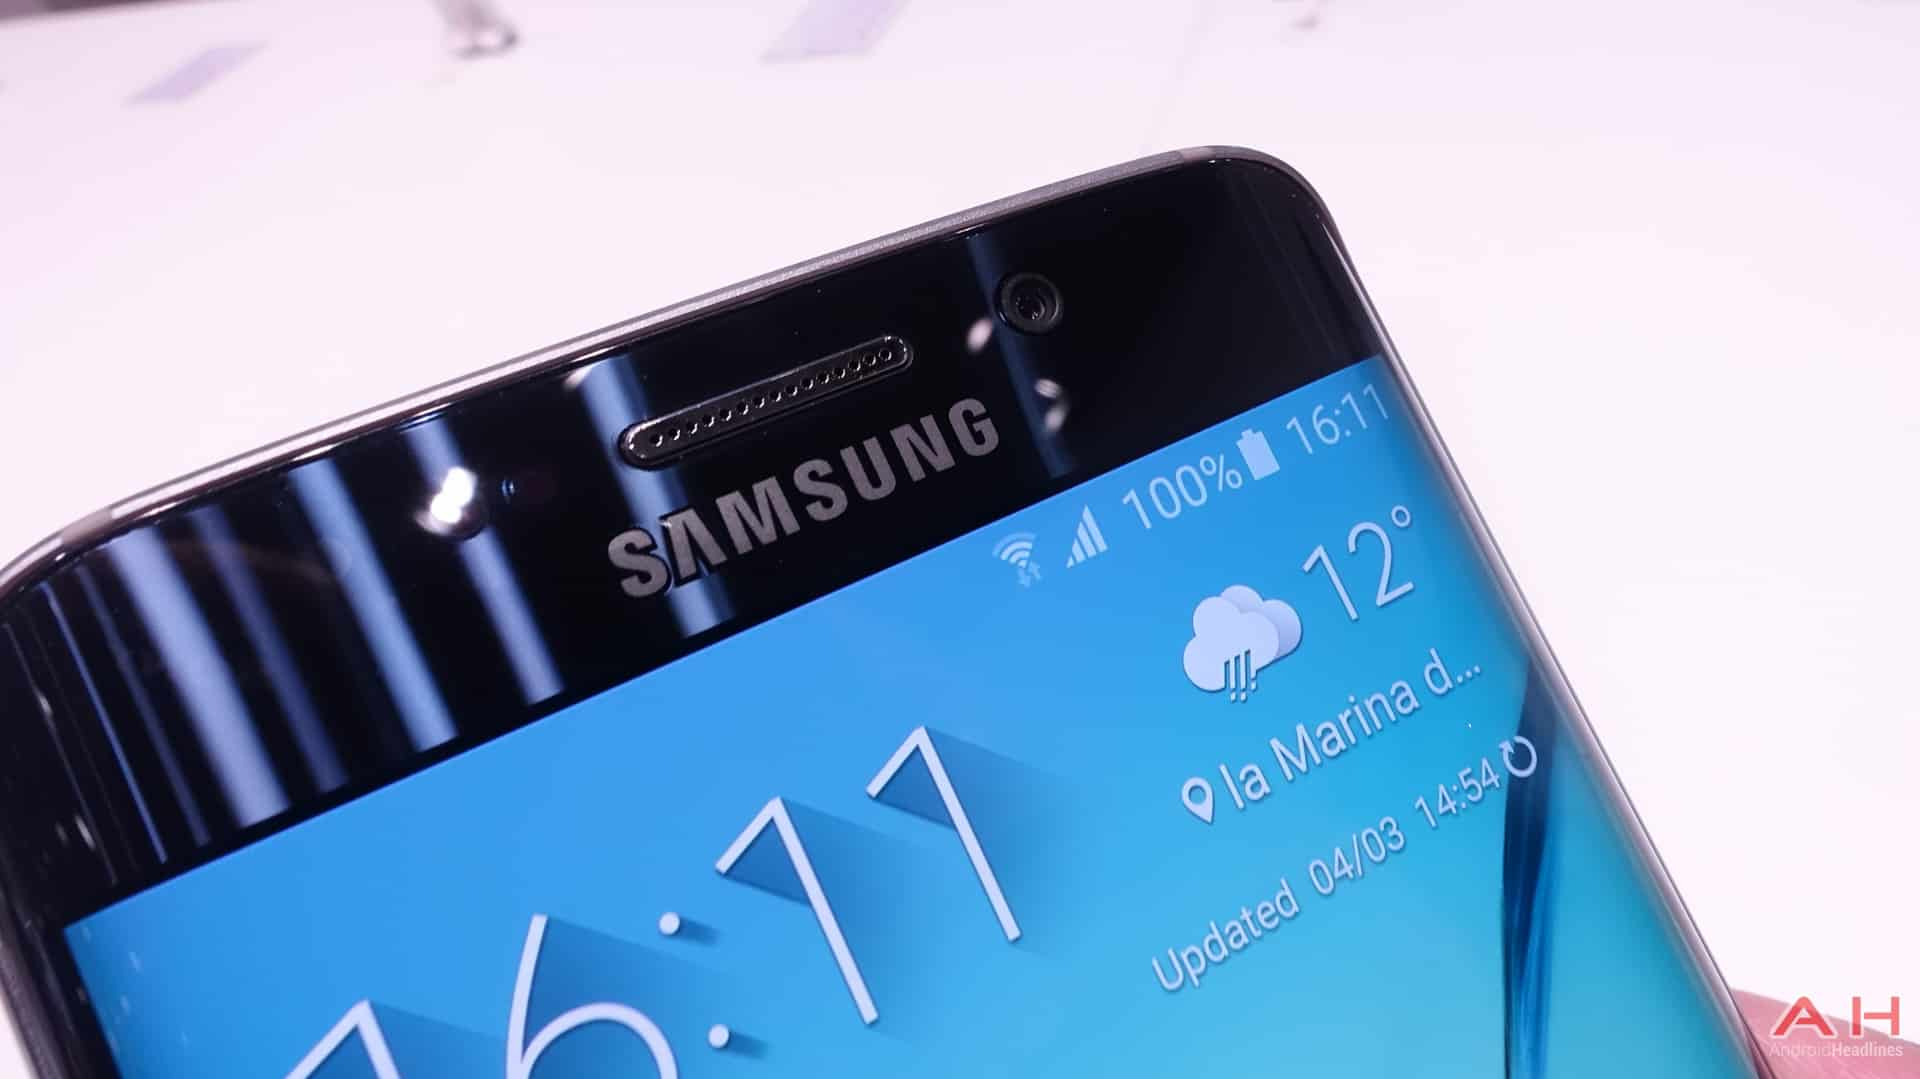 Samsung-Galaxy-S6-Edge-AH-15